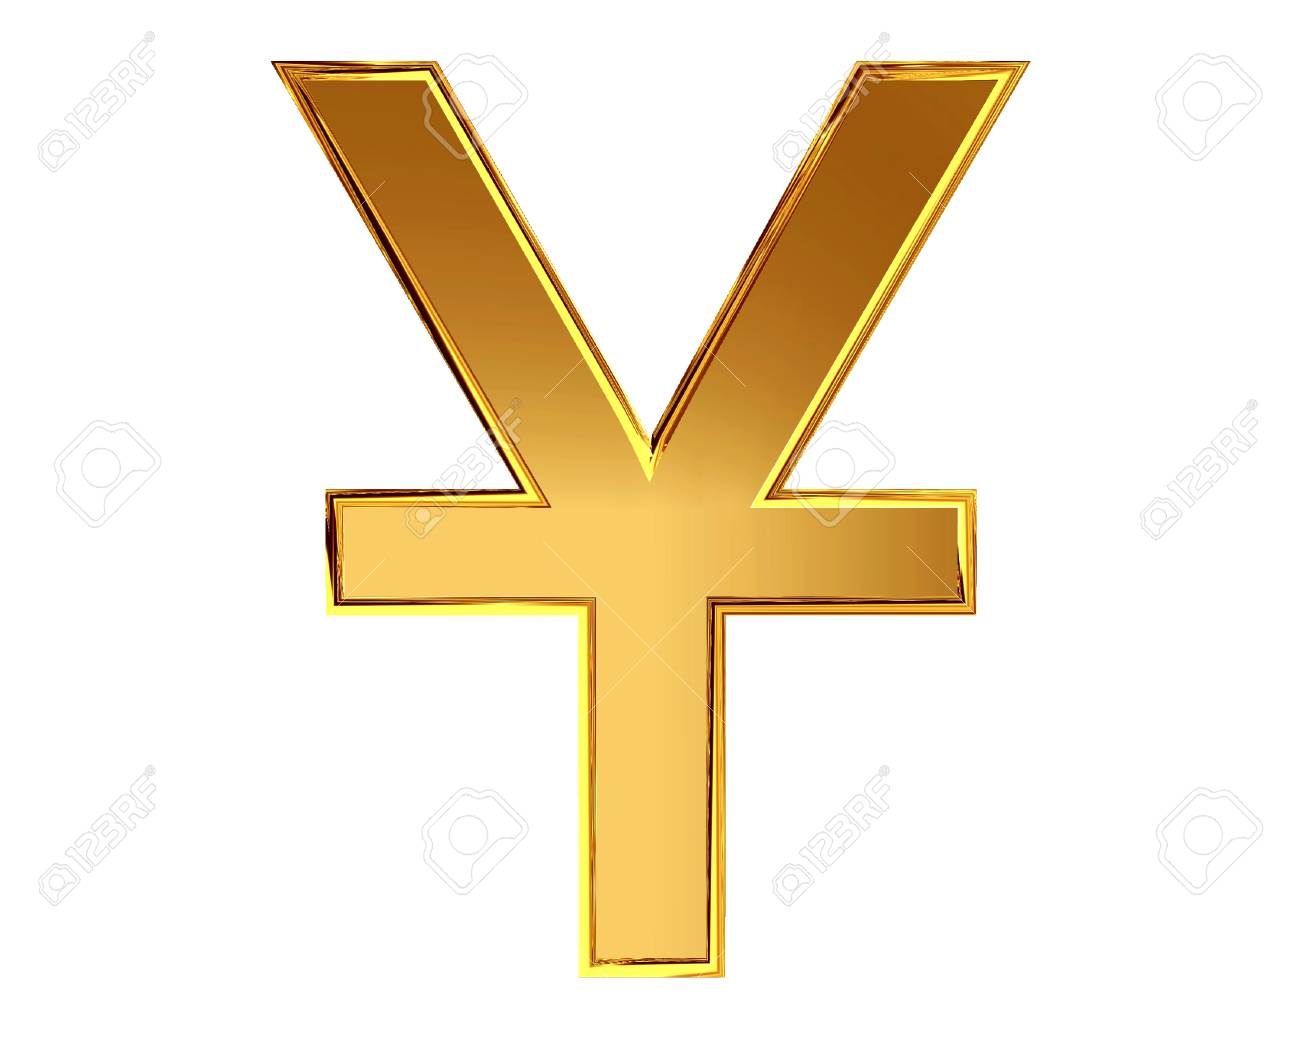 Currency chinese yuan symbol on a white background stock photo currency chinese yuan symbol on a white background stock photo 63735368 biocorpaavc Image collections